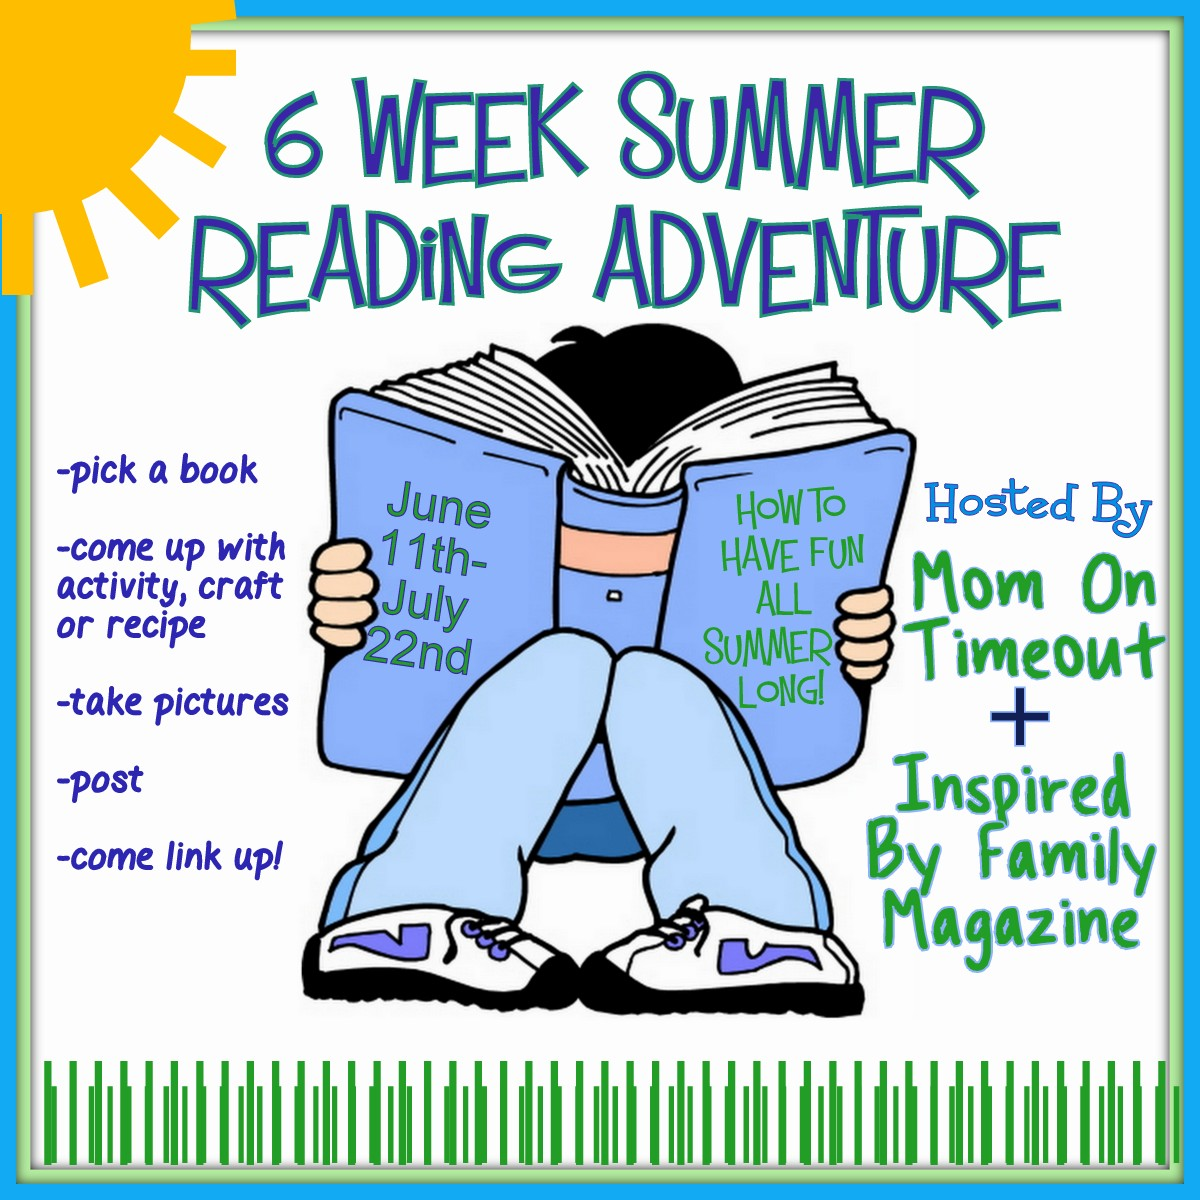 6 Week Summer Reading Adventure